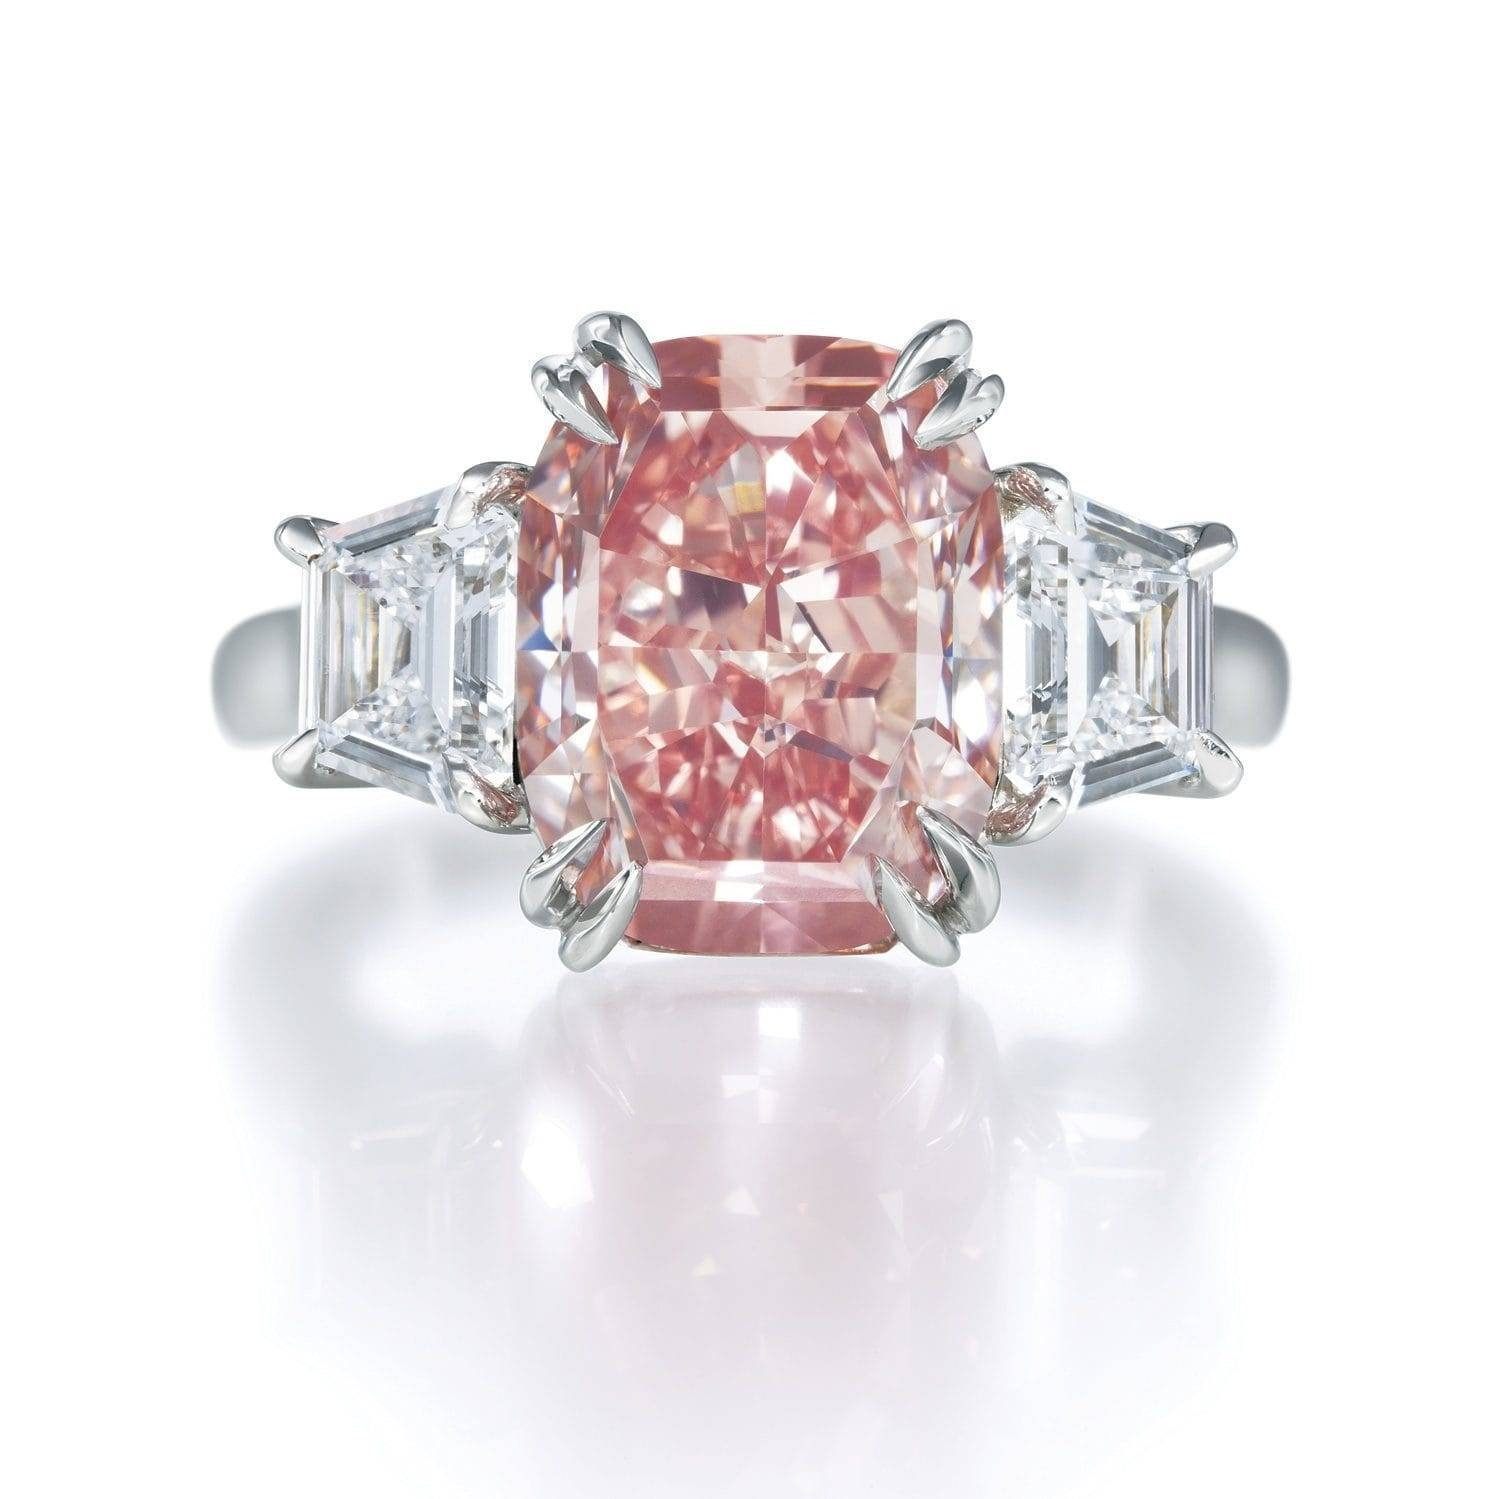 Inspiredthe Pink Star Diamond? 20 Spectacular Pink Diamond Pertaining To Pink And Diamond Engagement Rings (Gallery 1 of 15)